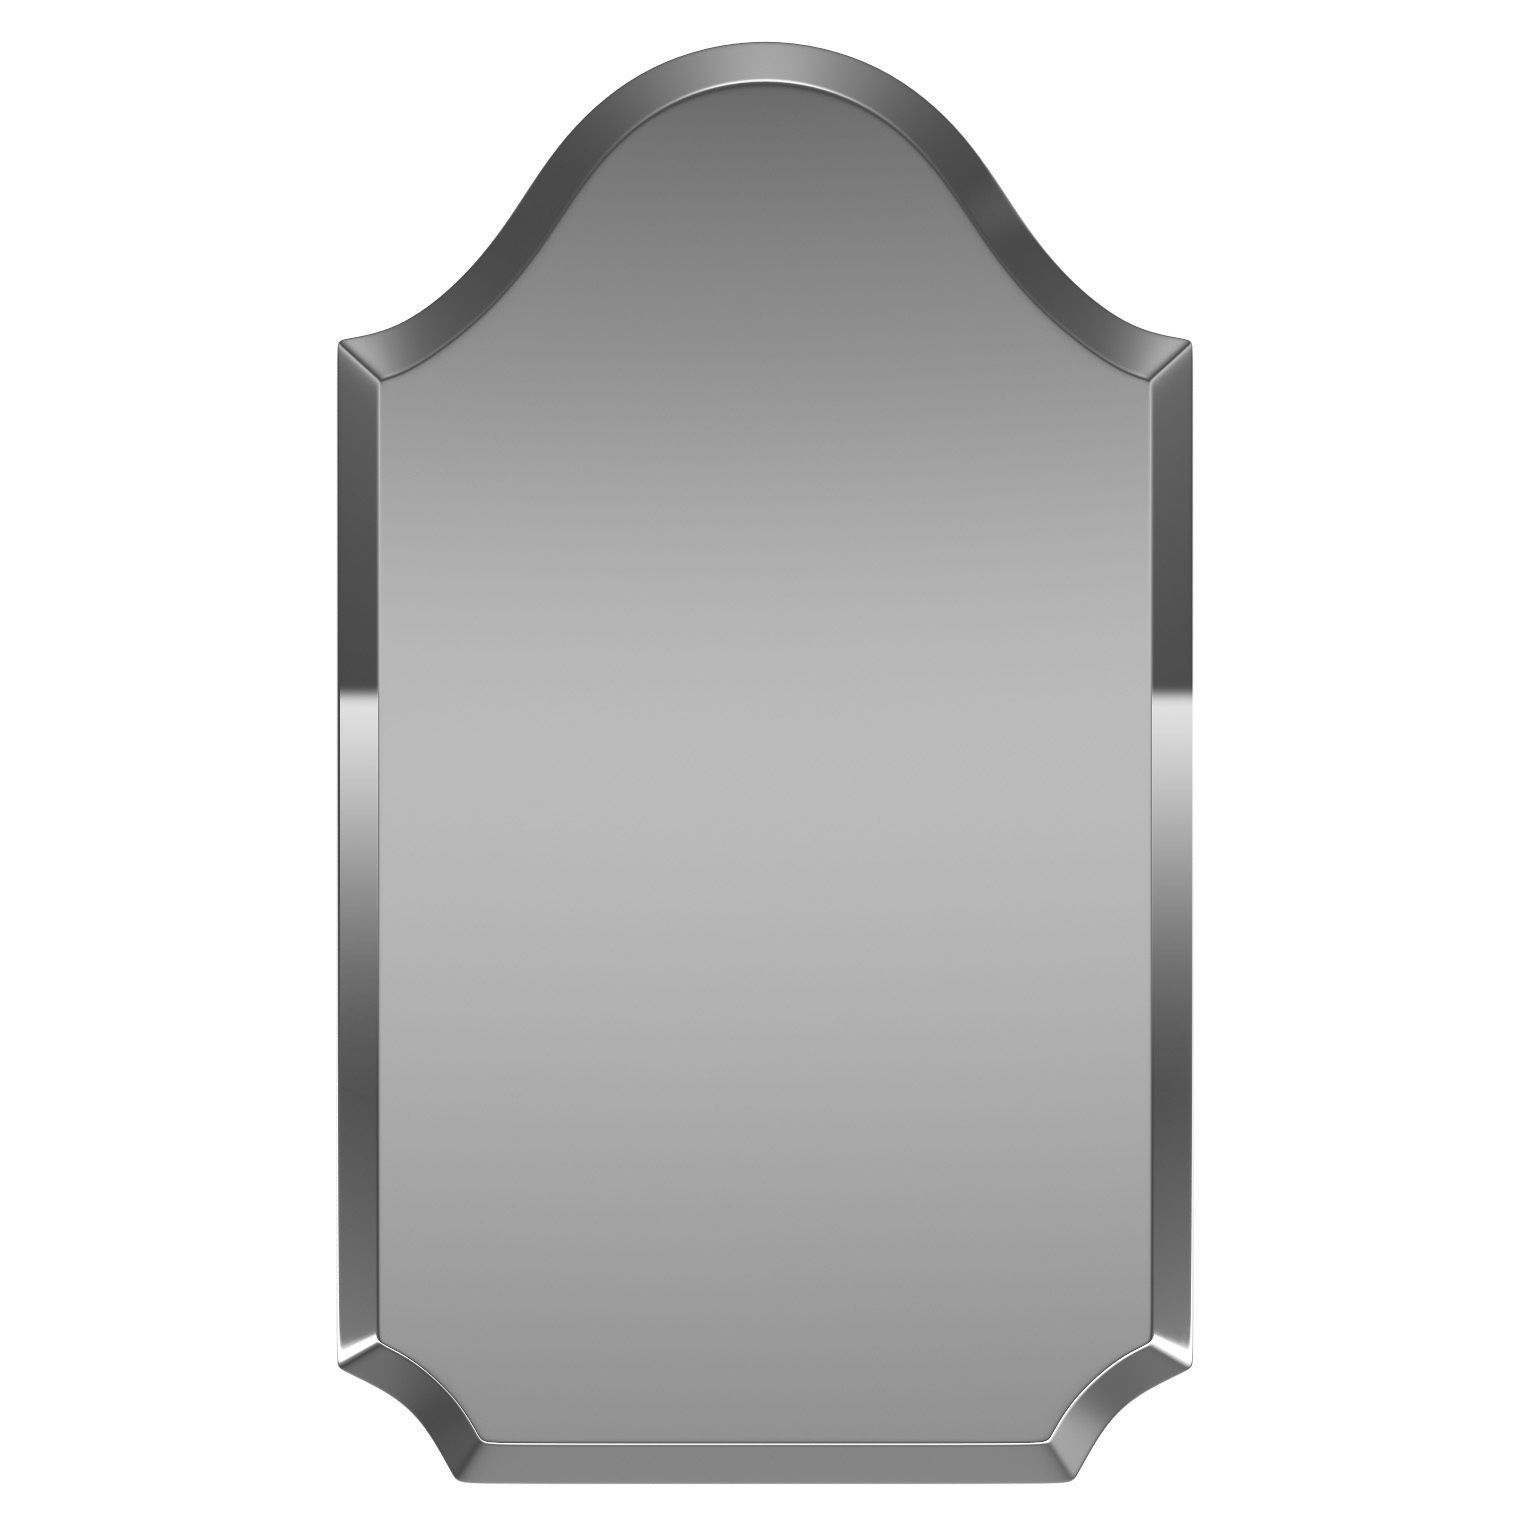 2020 Dariel Tall Arched Scalloped Wall Mirror Wrlo (View 1 of 20)